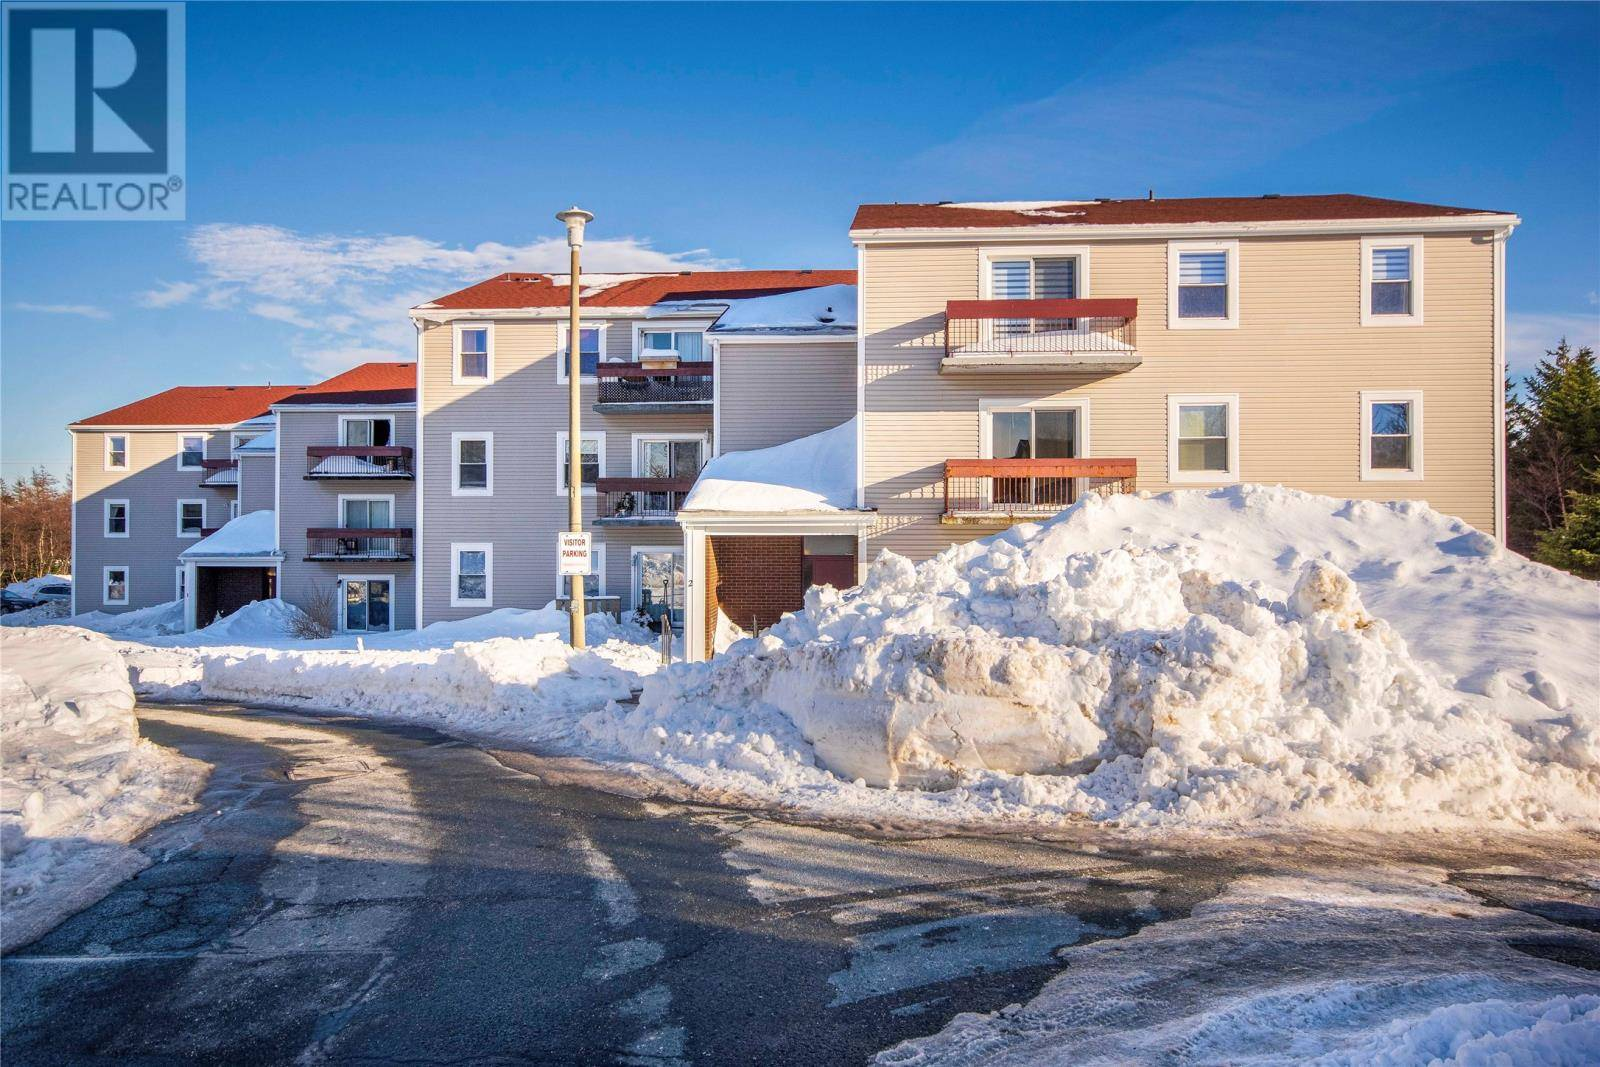 House for sale at 20 Dalton Ave Unit 104 Mount Pearl Newfoundland - MLS: 1209923